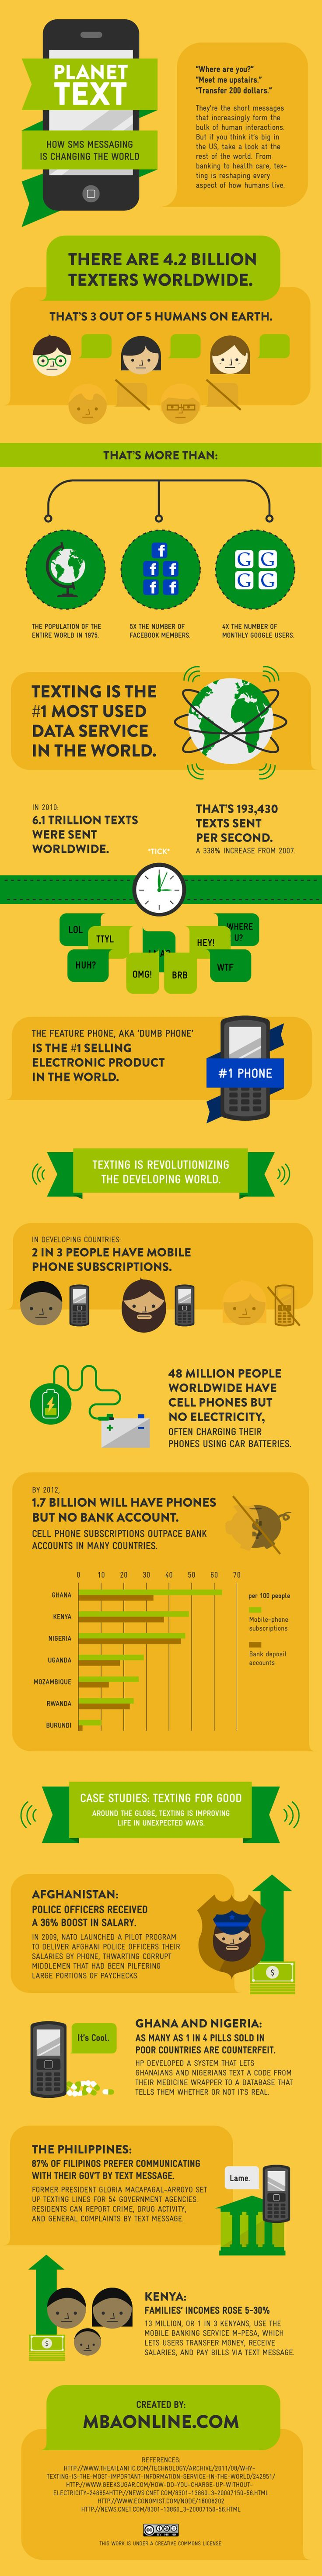 Infographic: how mobile phones are used and changing the world.